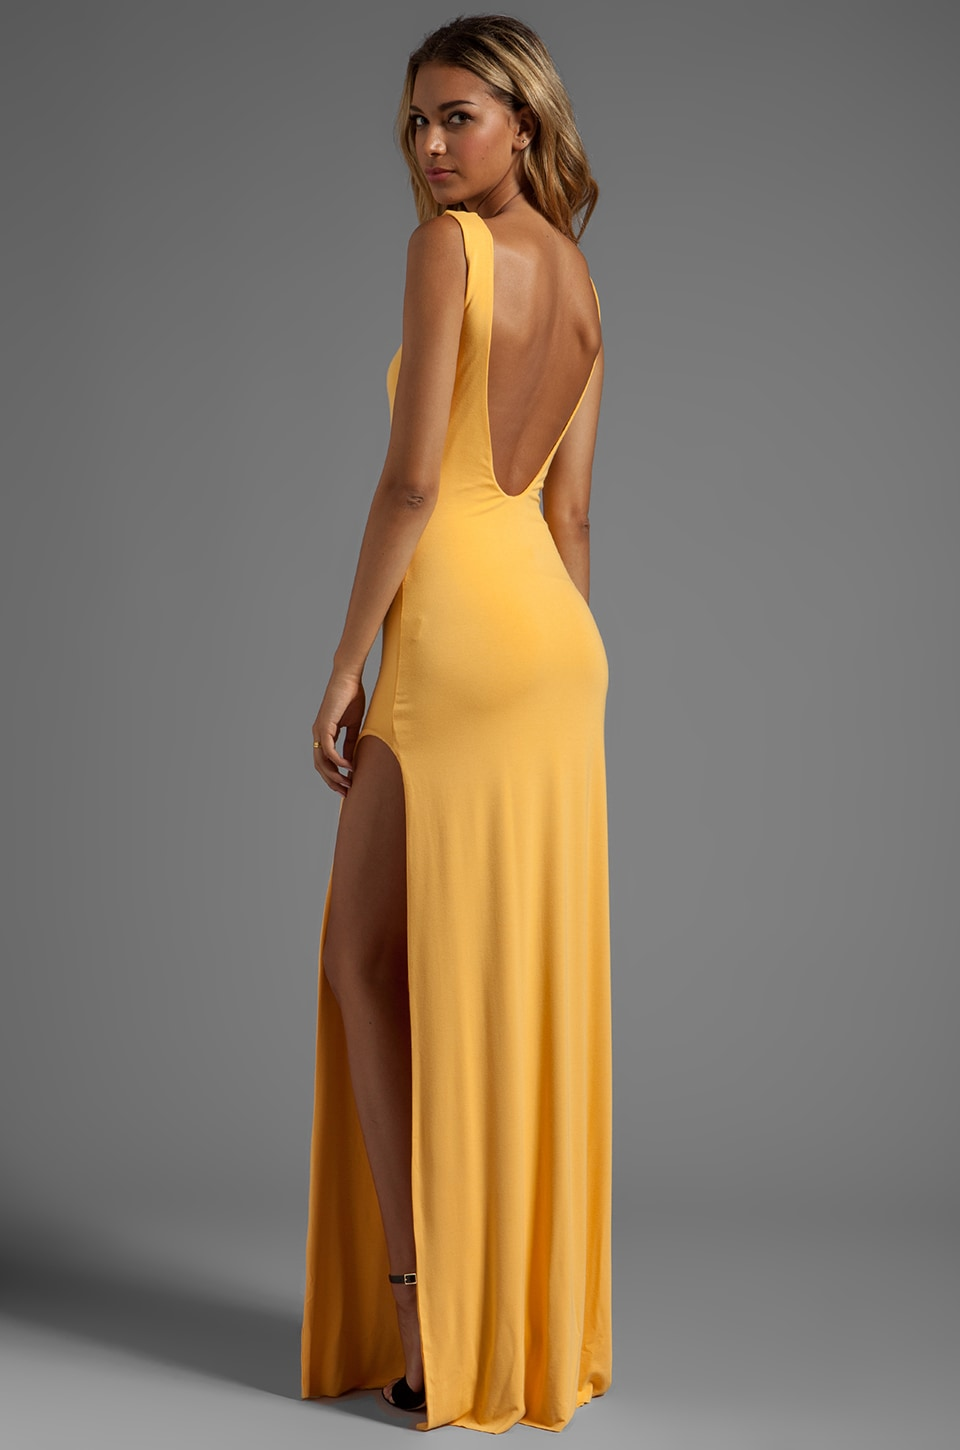 AQ/AQ Clutch Maxi Dress in Apricot